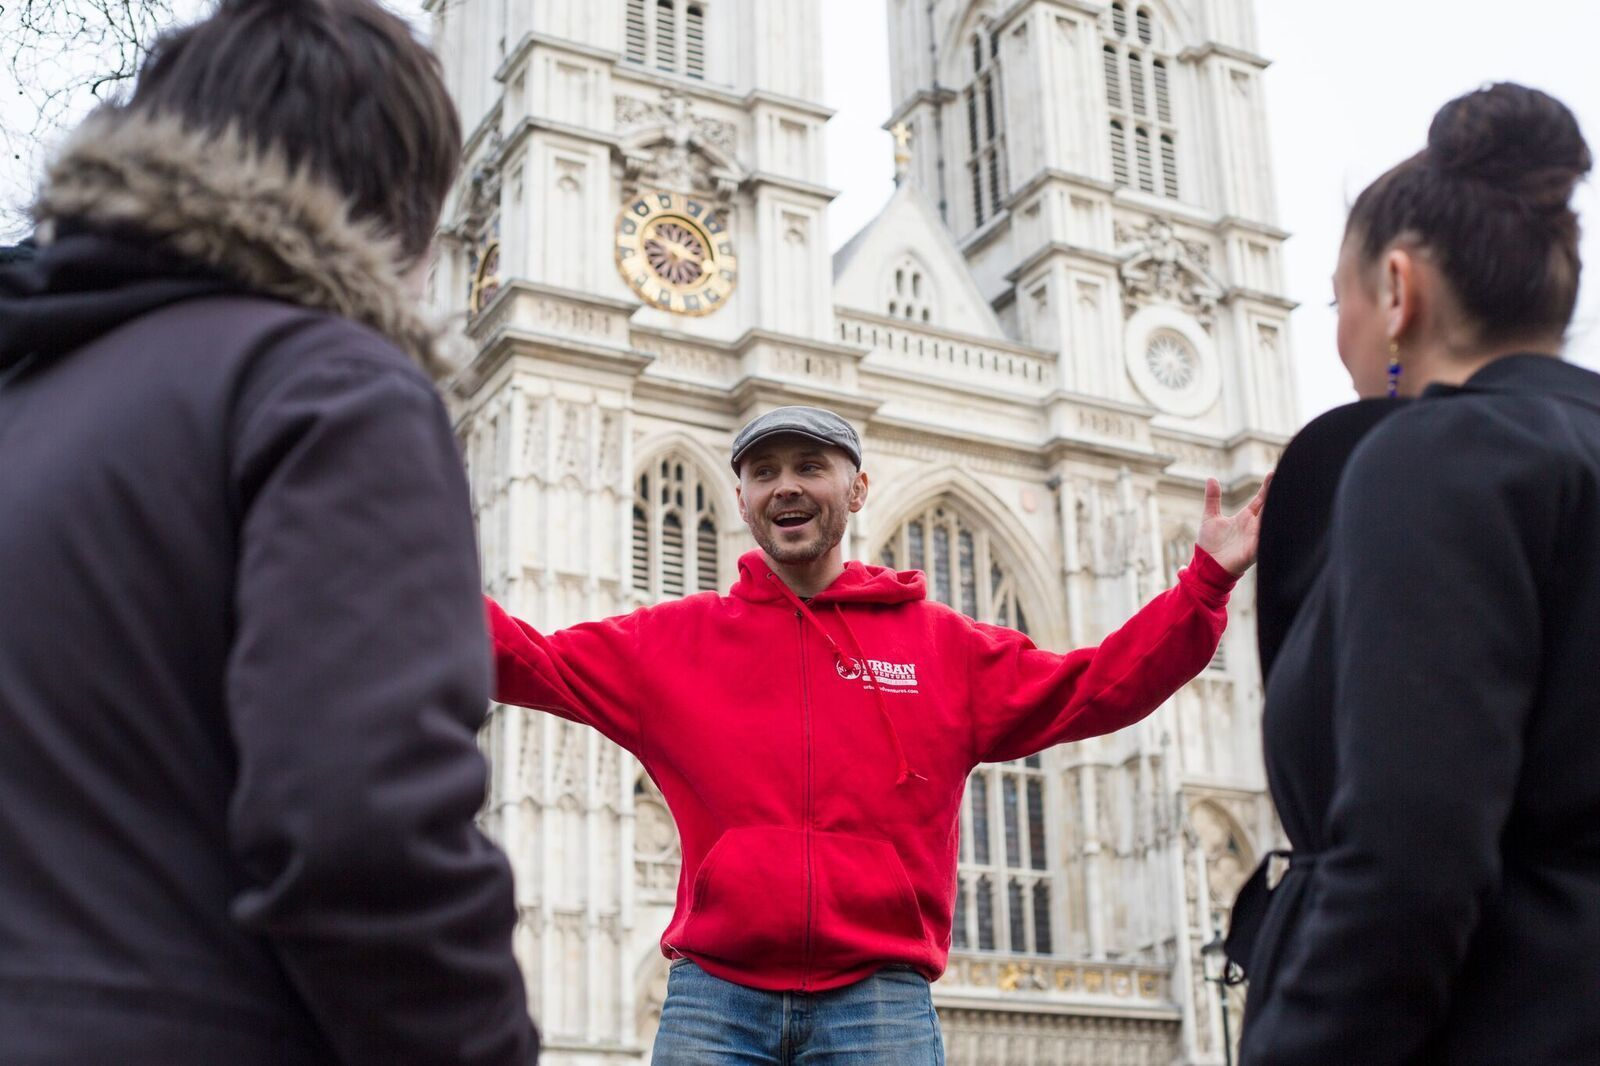 Tour guide in London